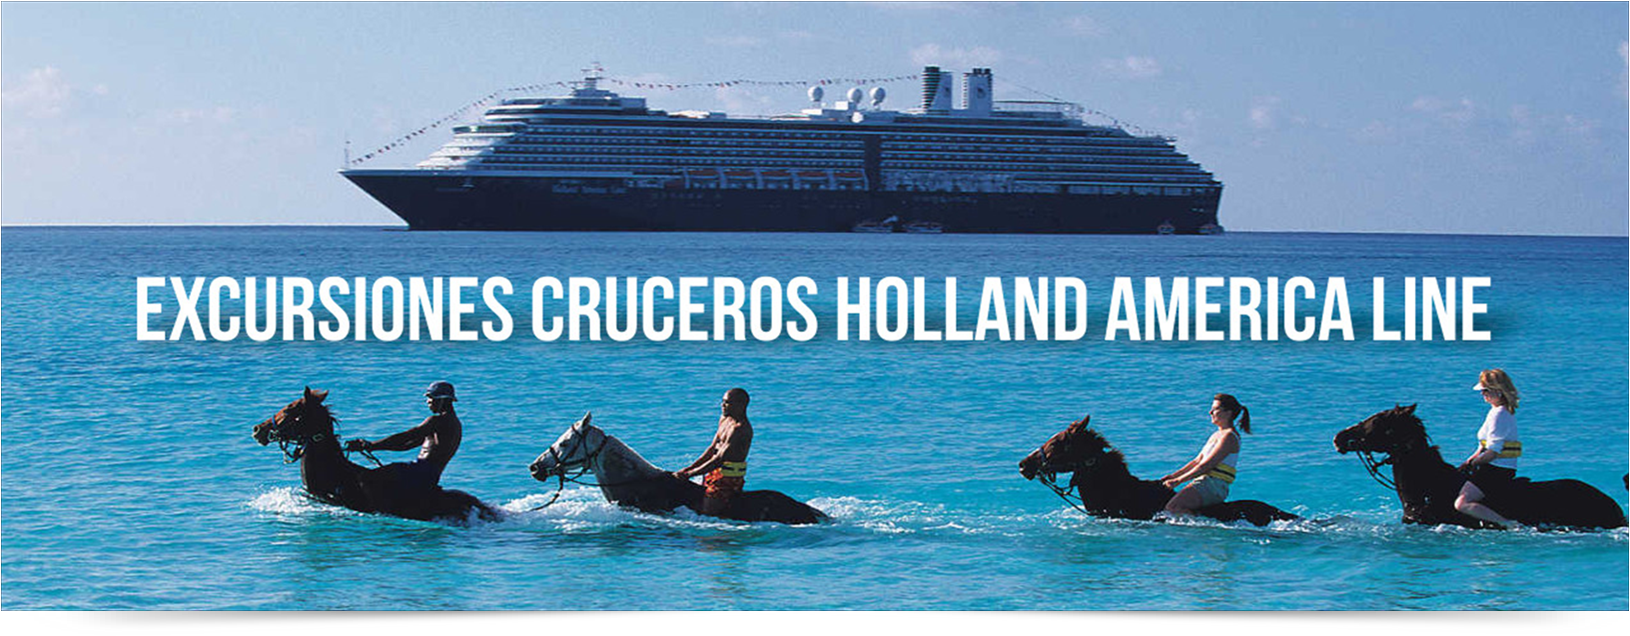 EXCURSIONES CRUCEROS HOLLAND AMERICA LINE